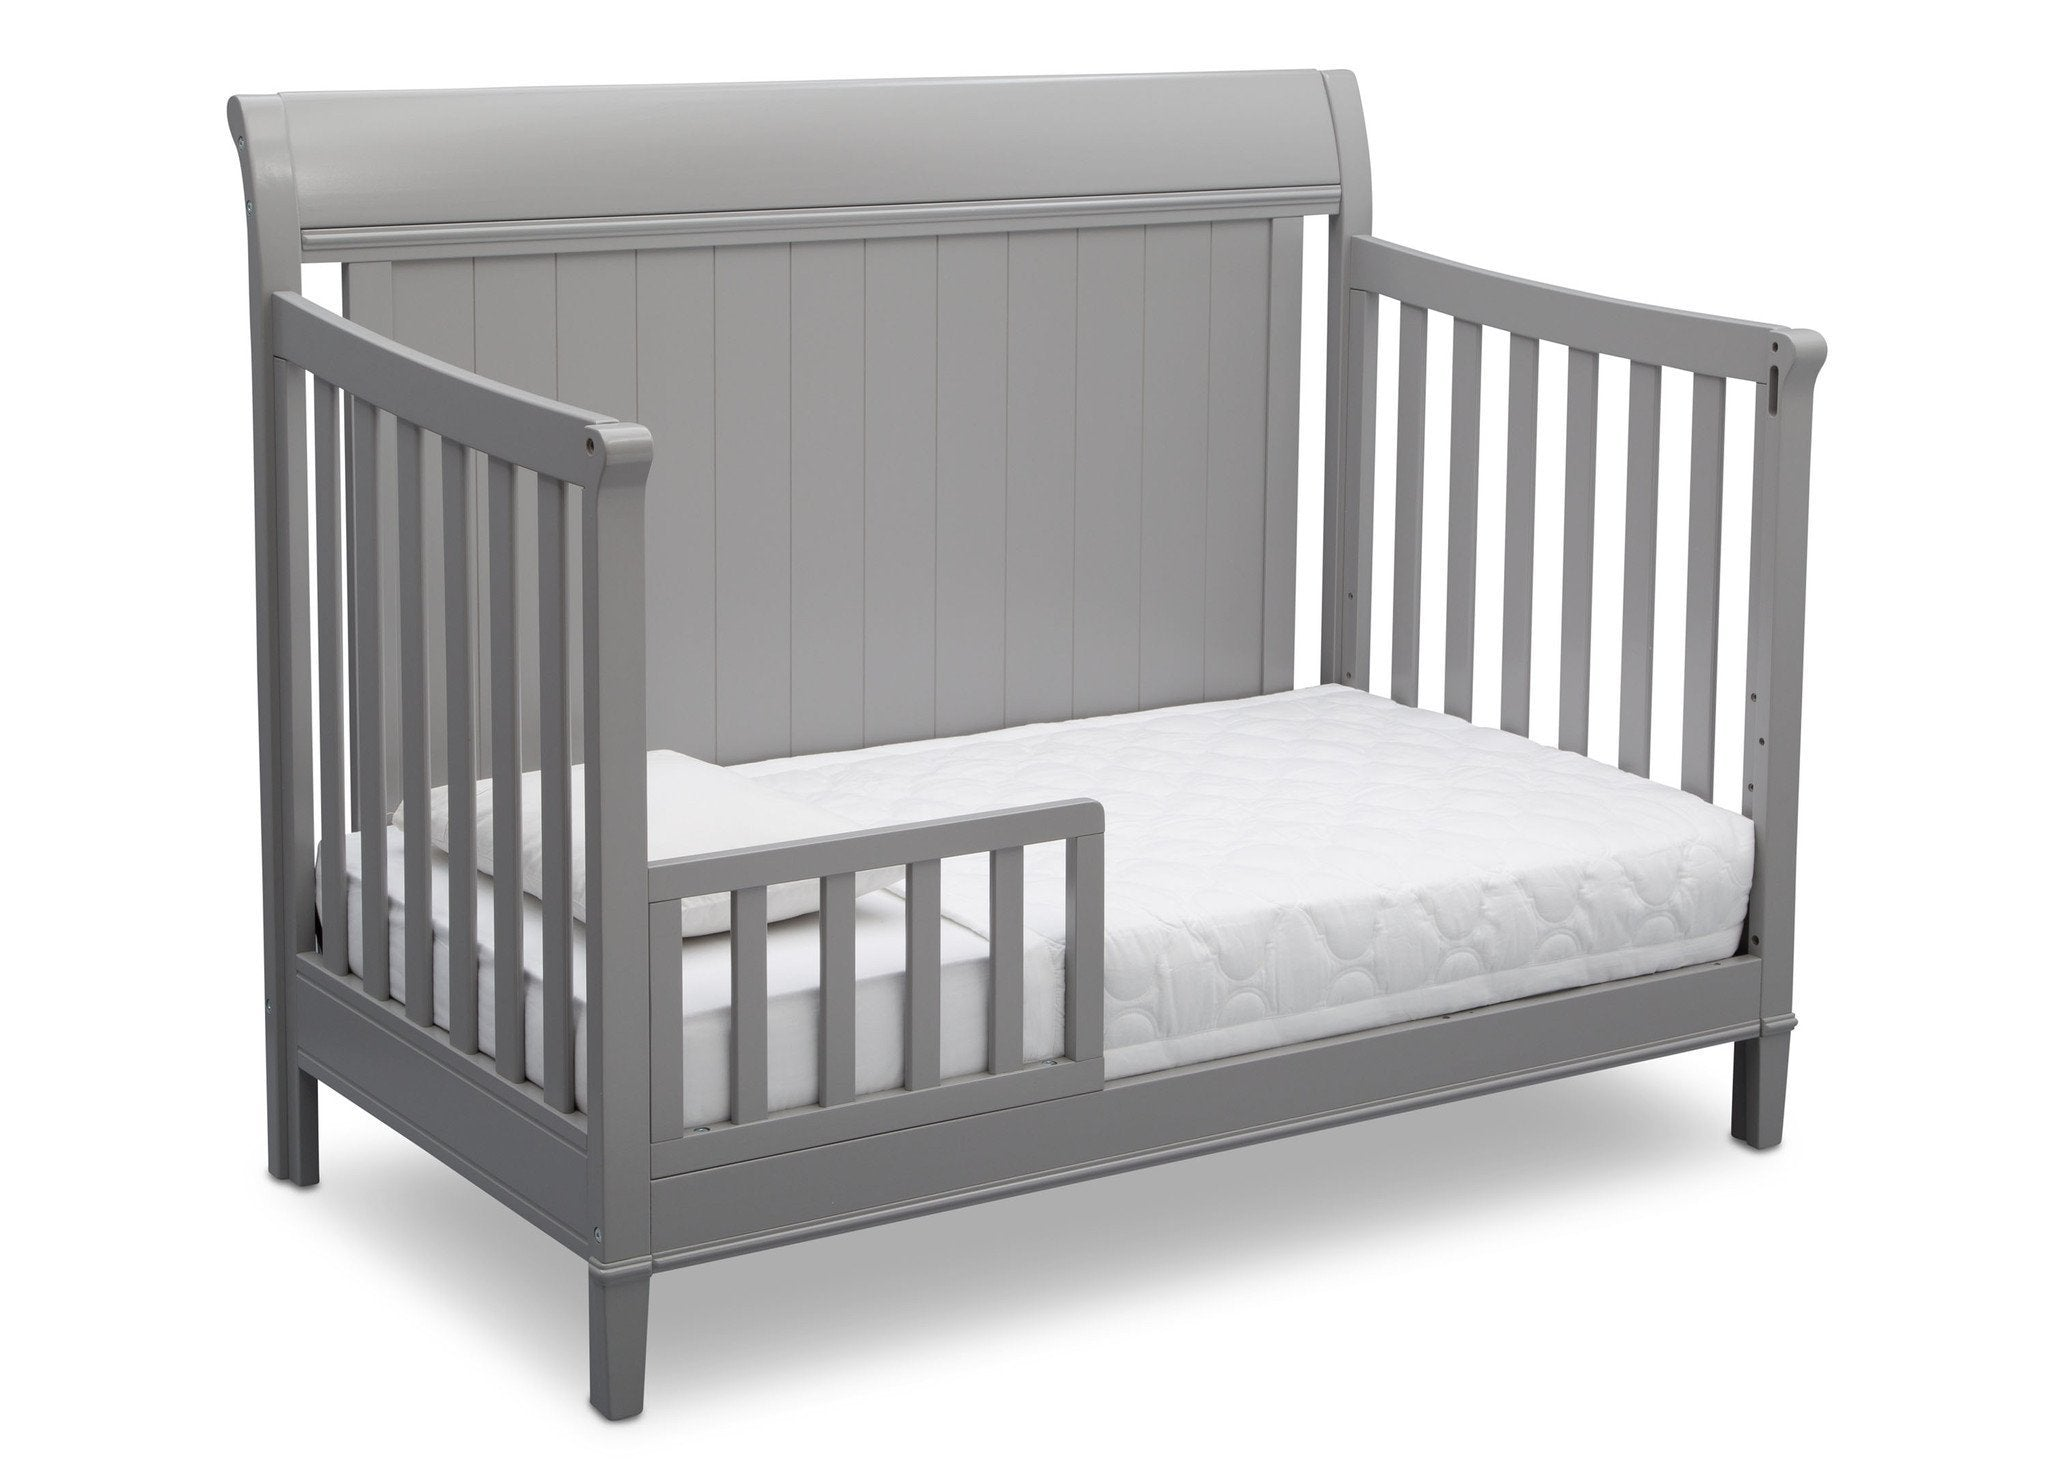 Delta Children Grey (026) New Haven 4-in-1 Crib, Angled Conversion to Toddler Bed, b4b